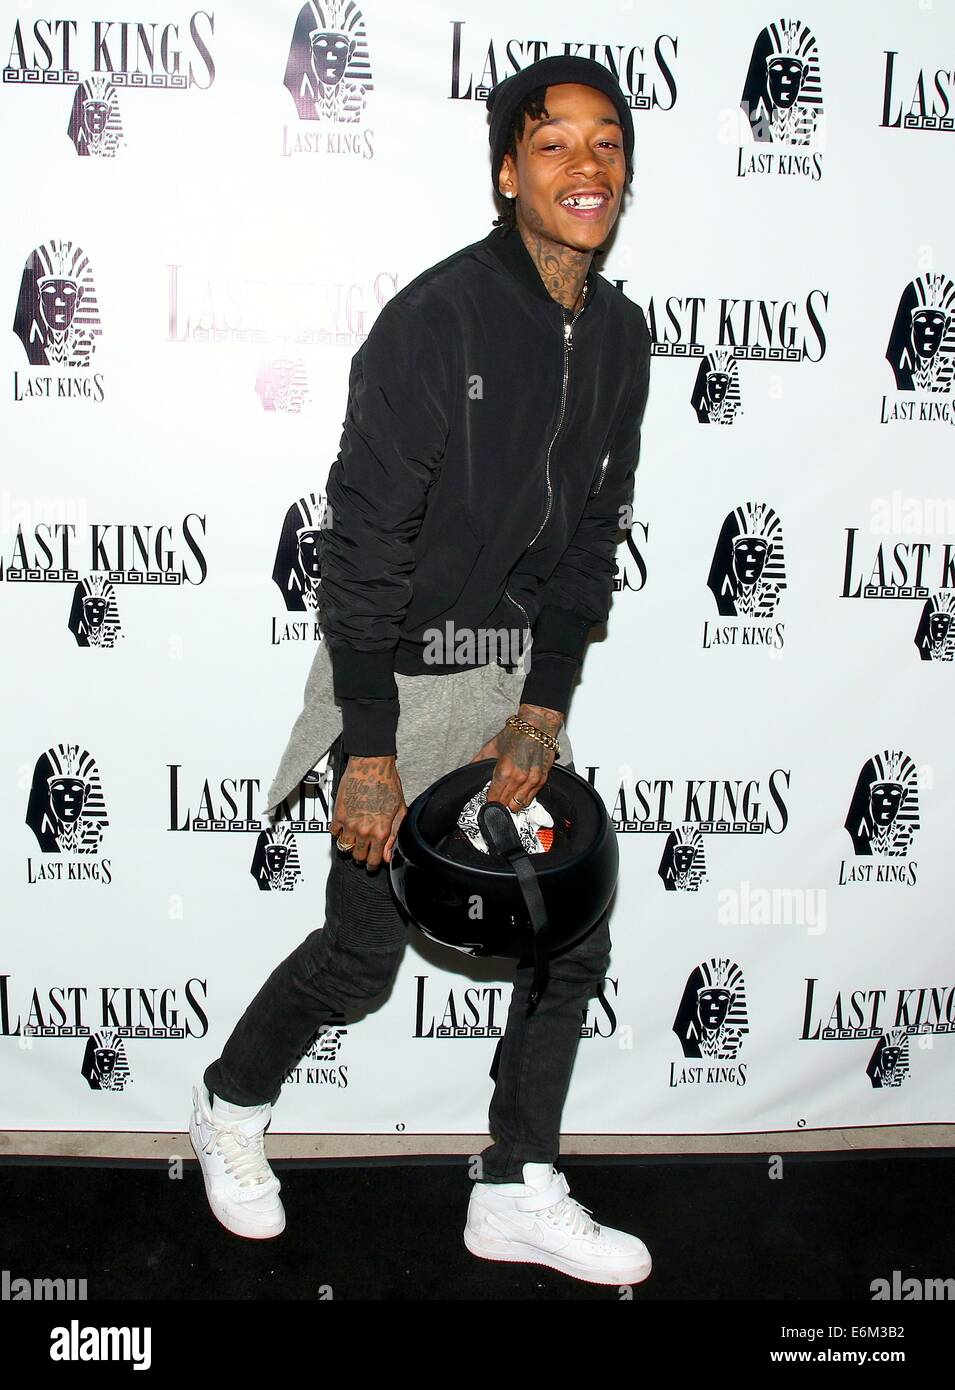 Pictures of wiz khalifa pictures of celebrities - Celebrities Attend The Grand Opening Of The Last Kings Flagship Store On Melrose Avenue Featuring Wiz Khalifa Where Los Angeles California United States